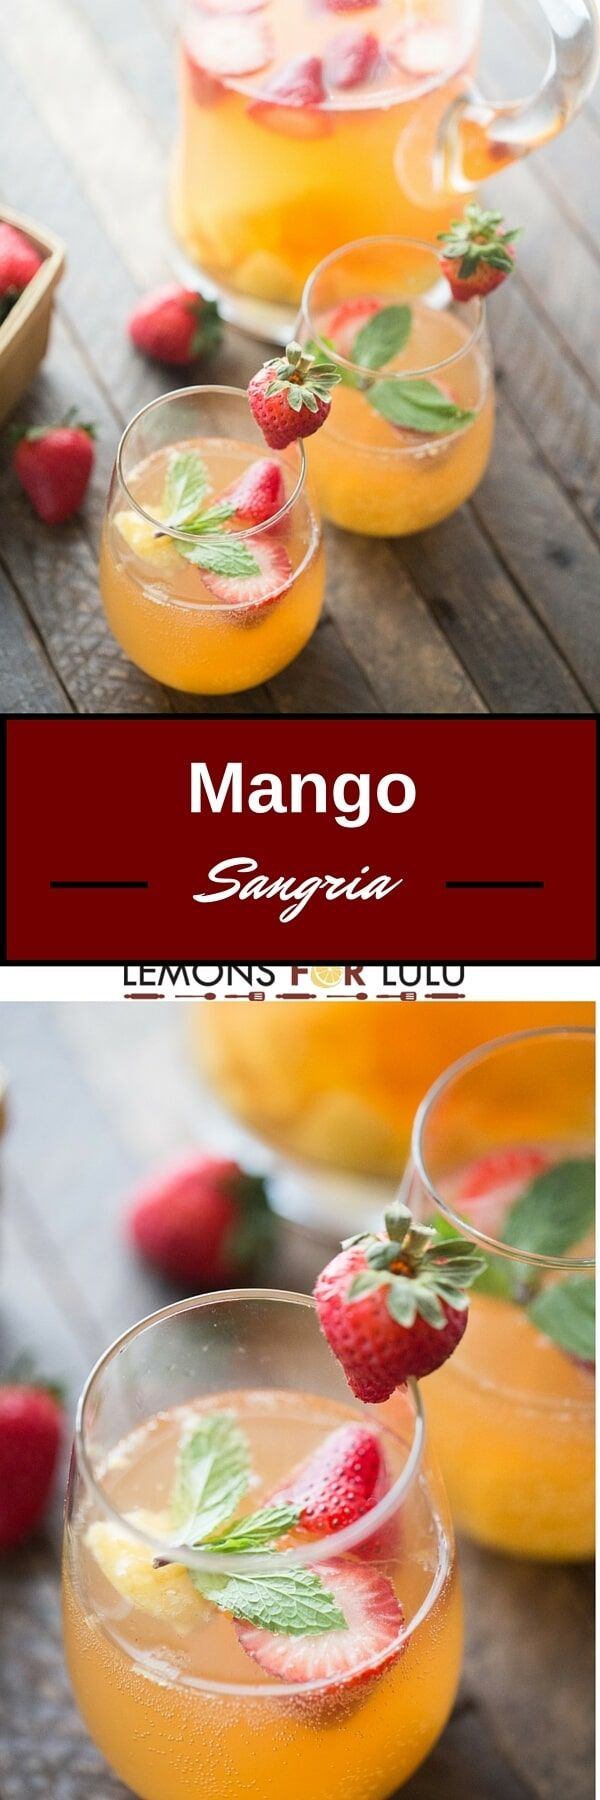 Mango sangria #drinks